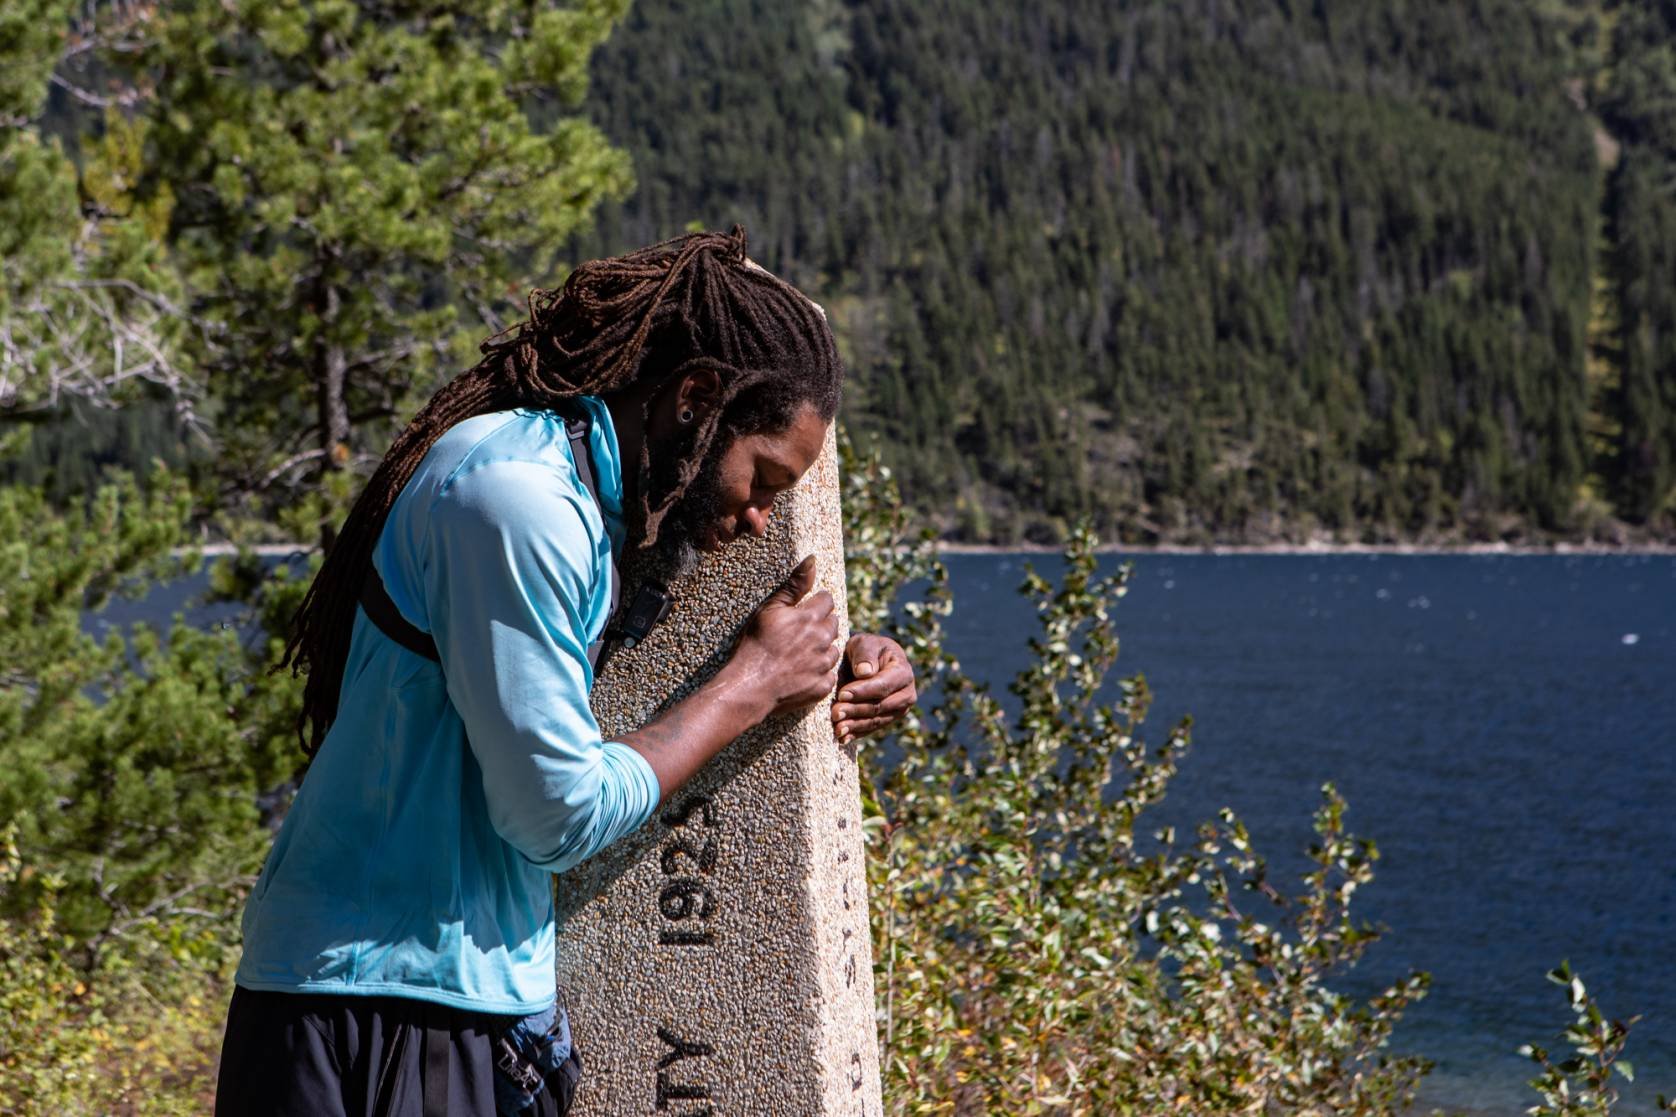 Will 'Akuna' Robinson bowing head on trail marker